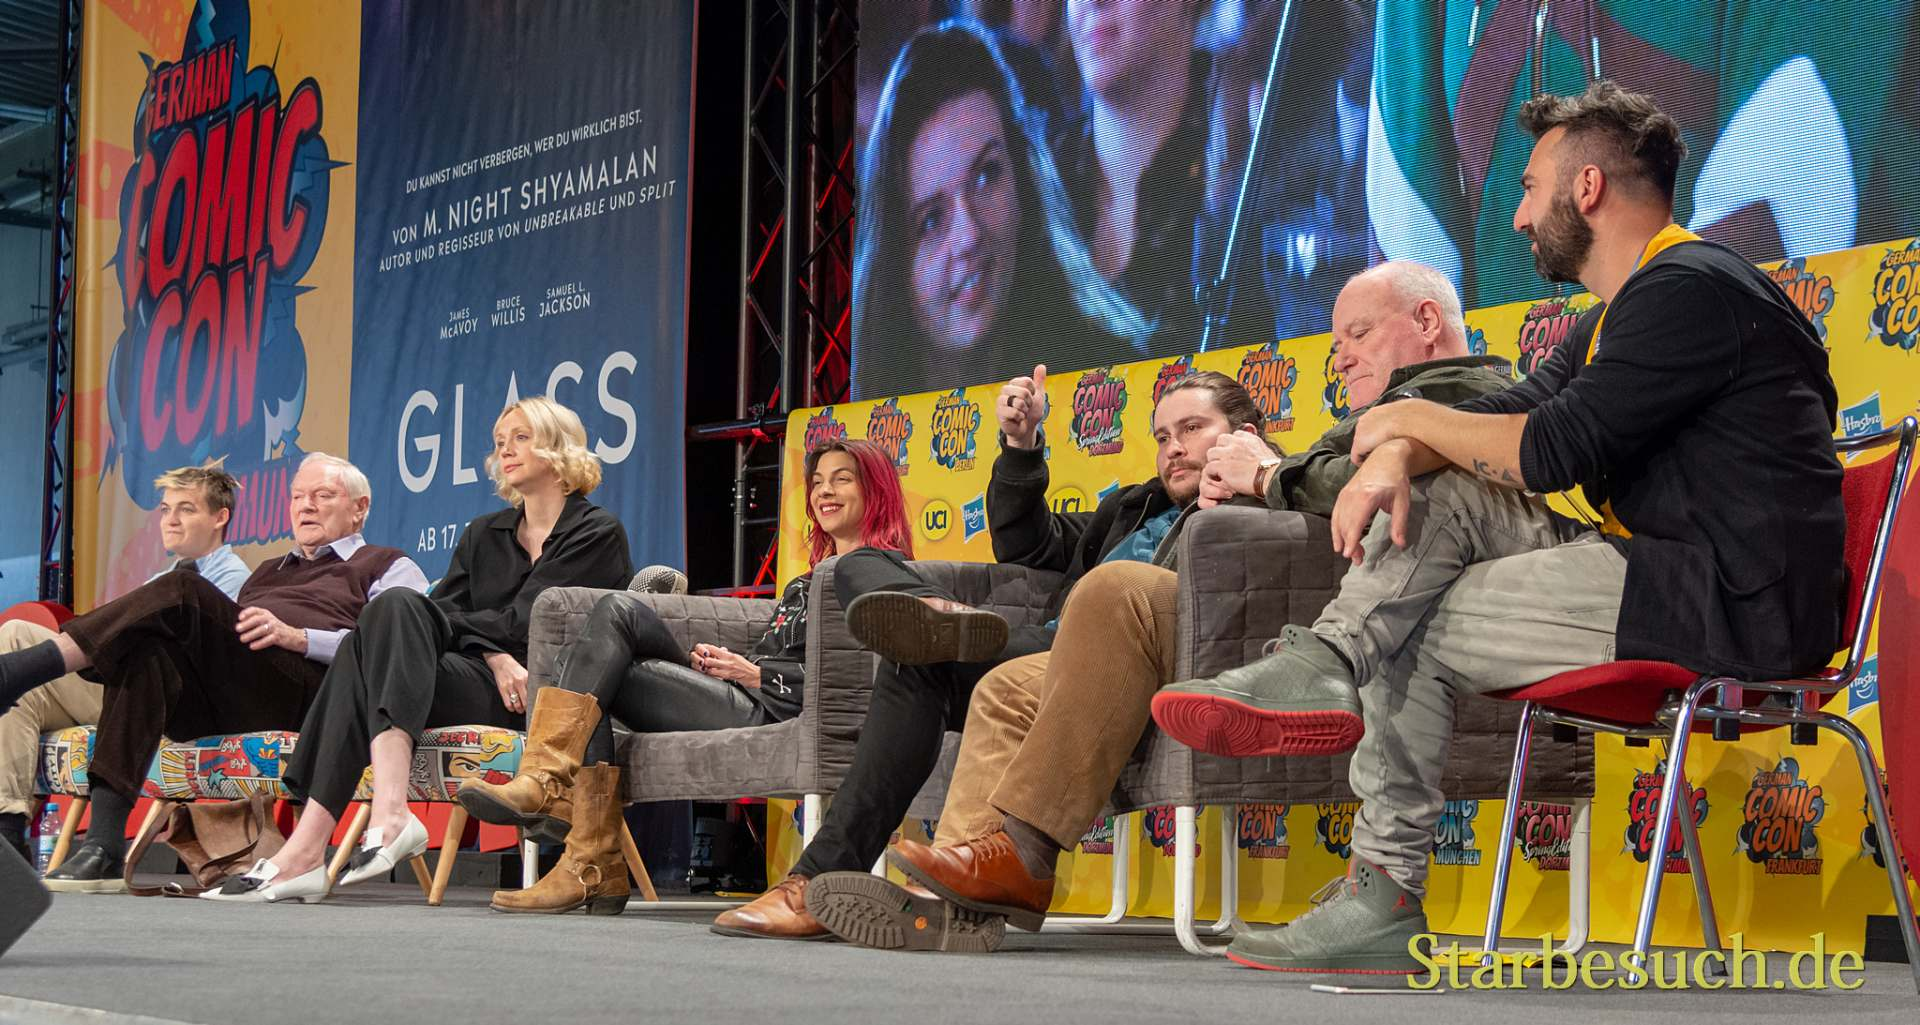 DORTMUND, GERMANY - December 1st 2018: Jack Gleeson, Julian Glover, Gwendoline Christie, Natalia Tena, Daniel Portman and Ron Donachie at German Comic Con Dortmund, a two day fan convention